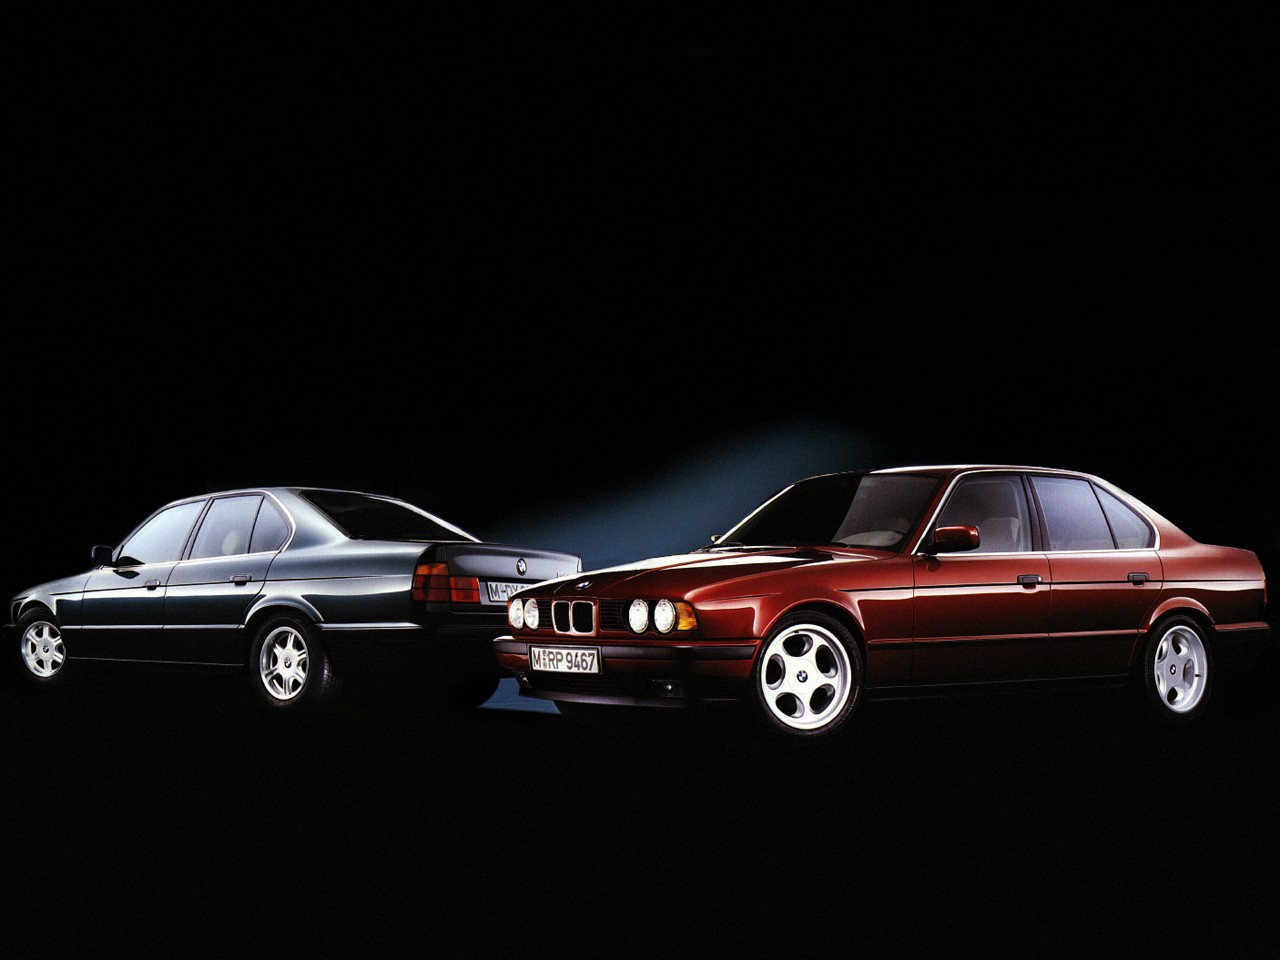 Bmw E34 Wallpapers Wallpapersafari 5 Series Wallpaper Car Hd Page 16 1280x960